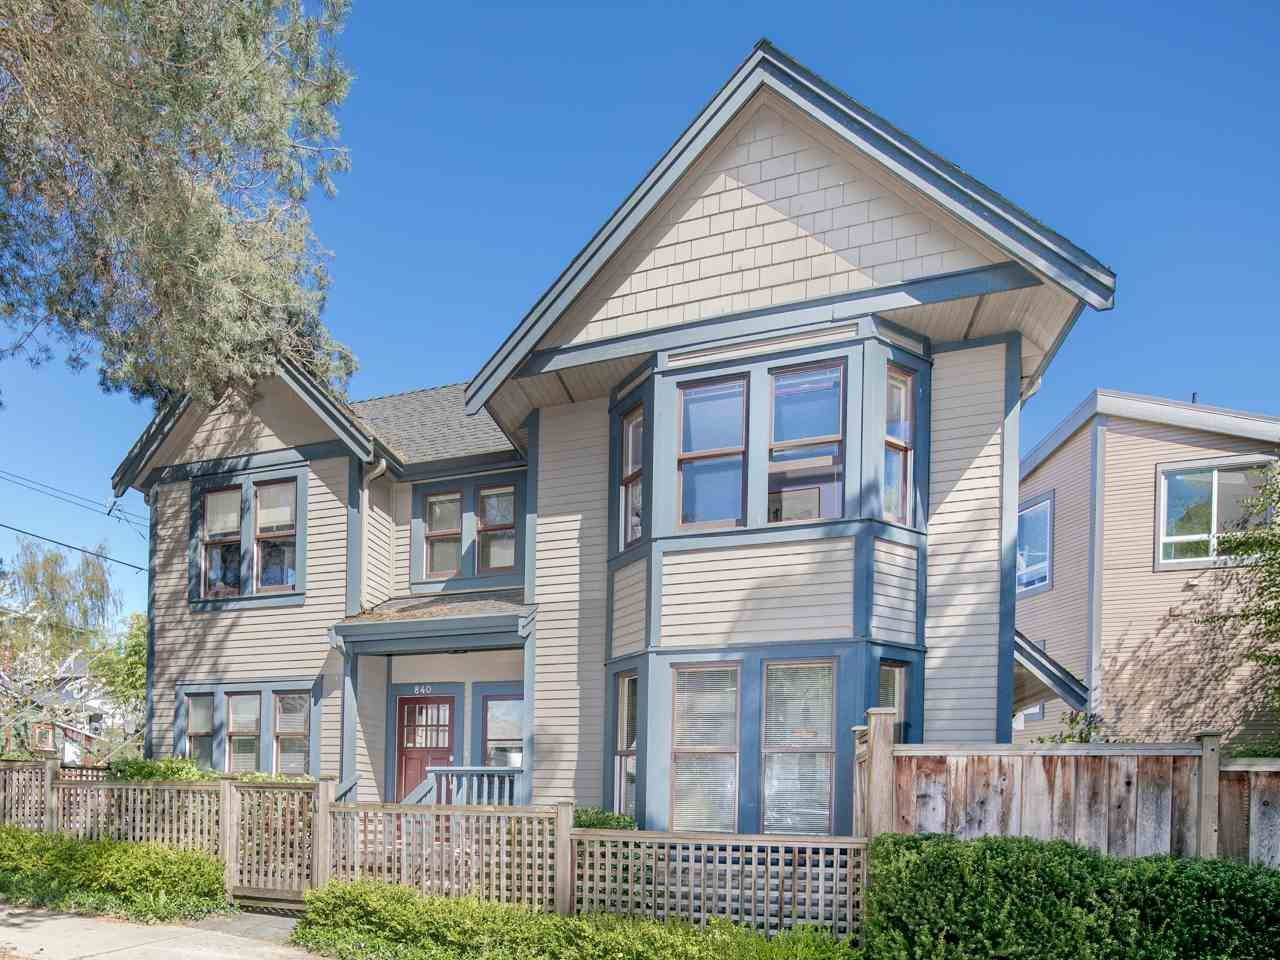 Main Photo: 840 Dunlevy Street in Vancouver: Mount Pleasant VE House for sale (Vancouver East)  : MLS®# R2159141